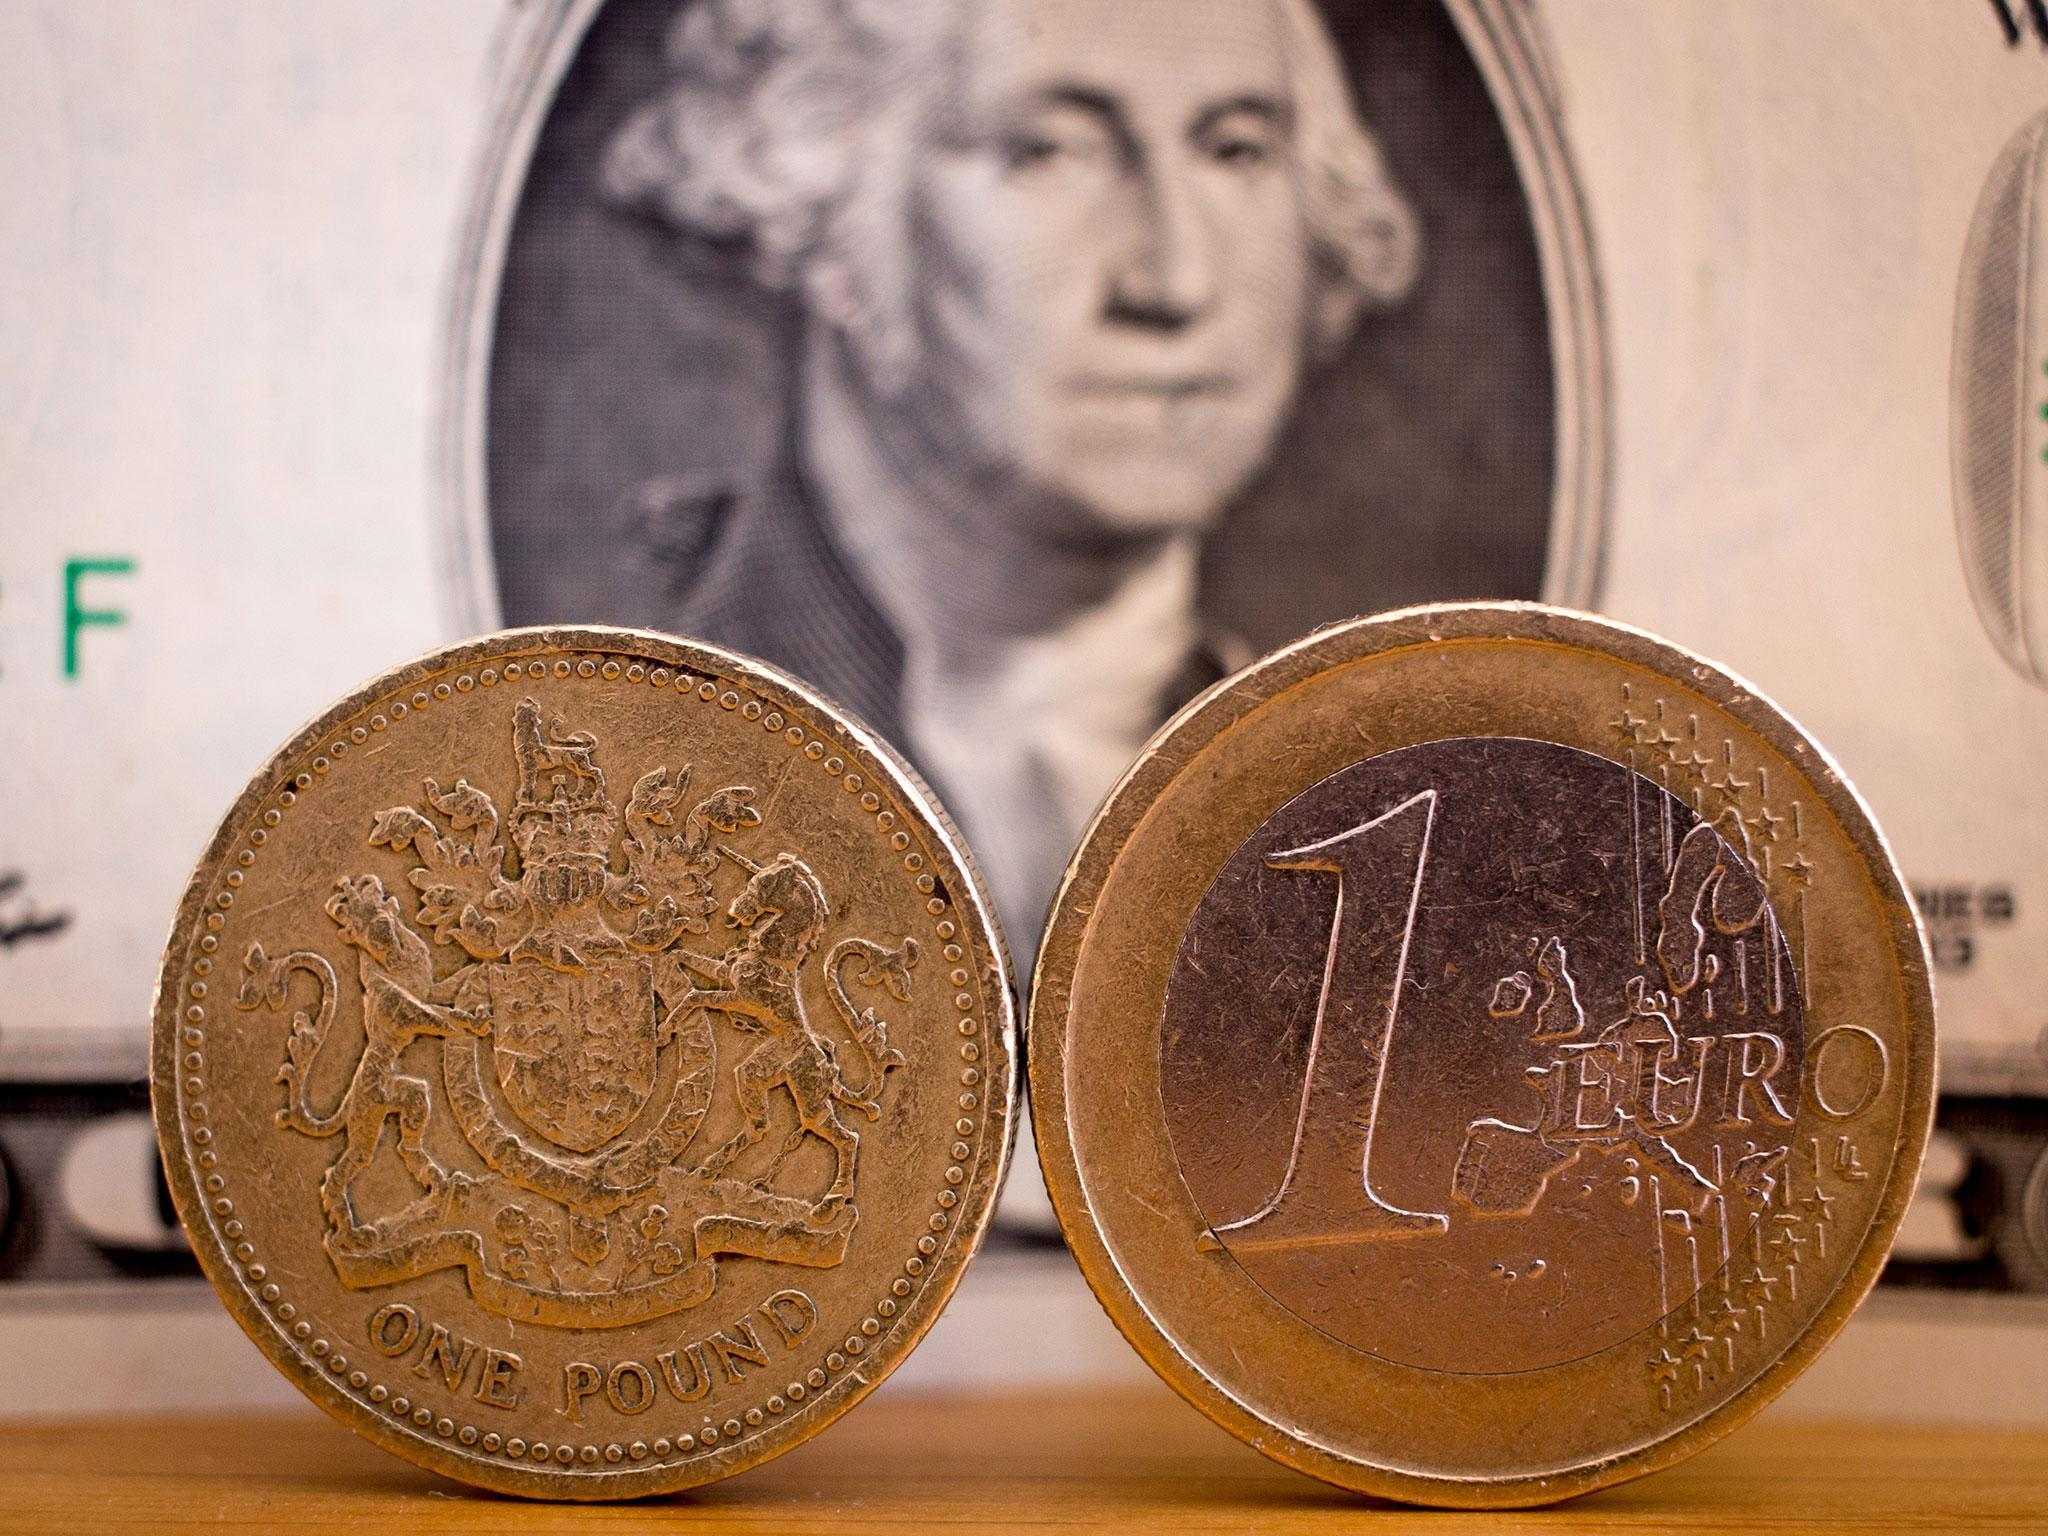 Pound Sterling Likely To Plunge To Record Low Once